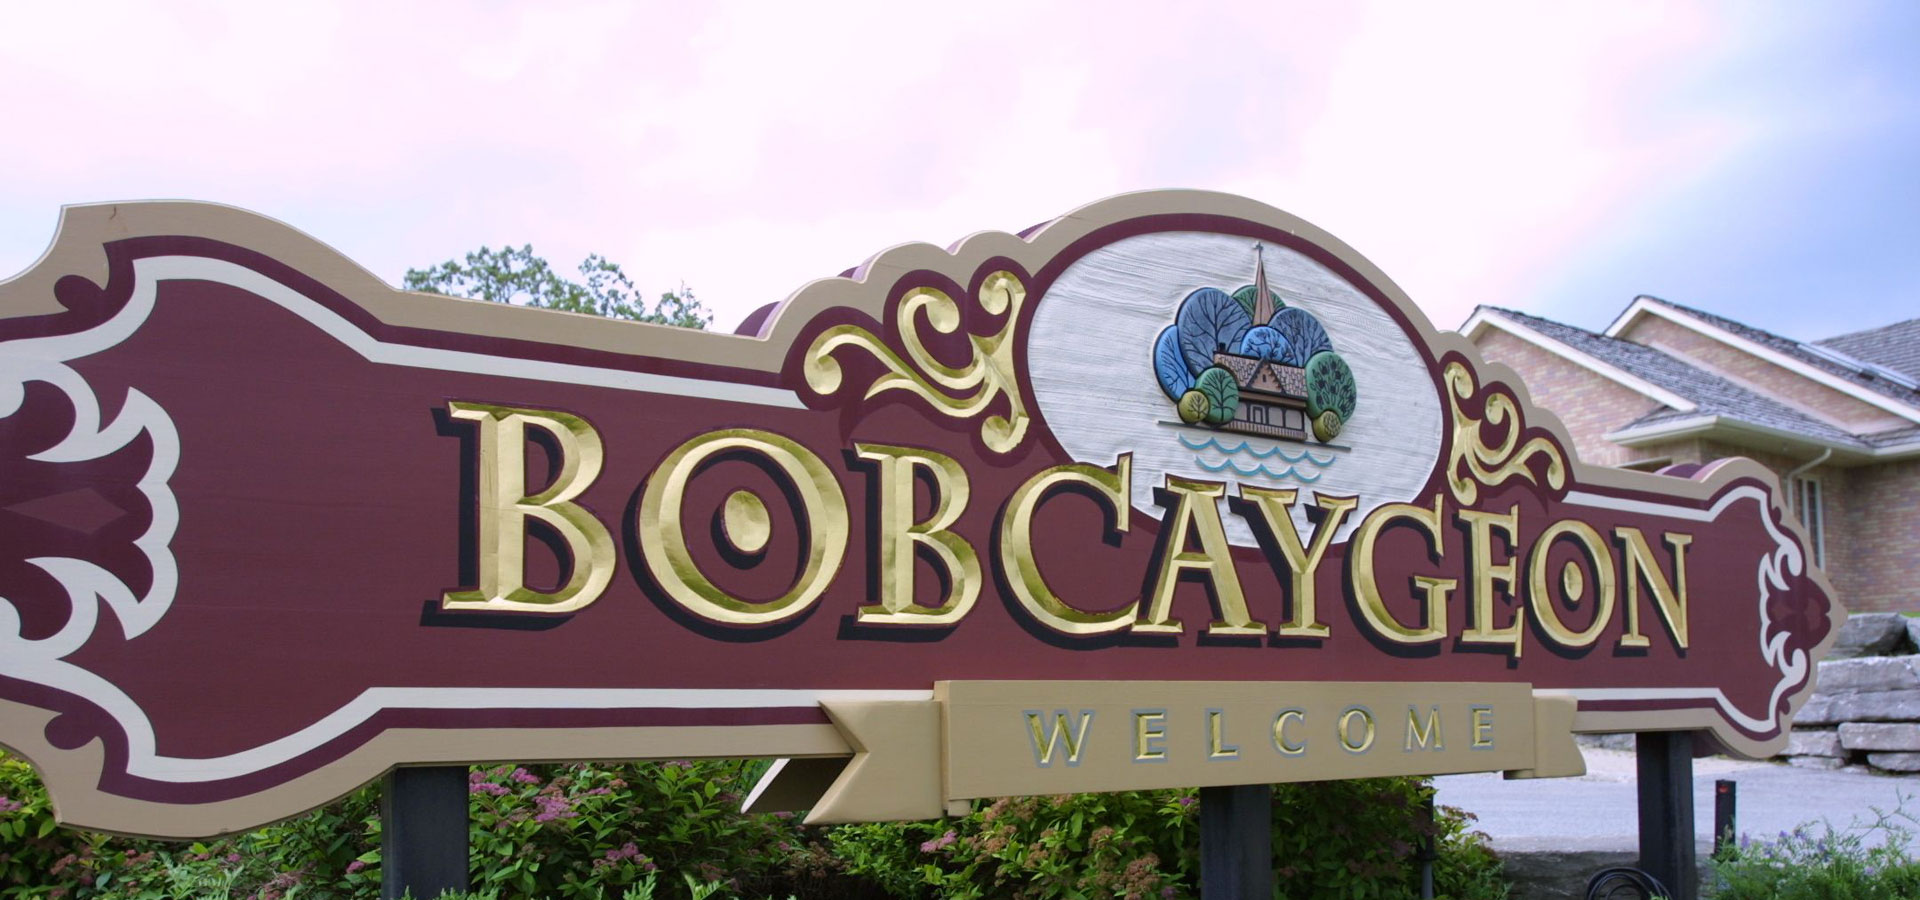 Welcome sign at the Bobcaygeon Inn